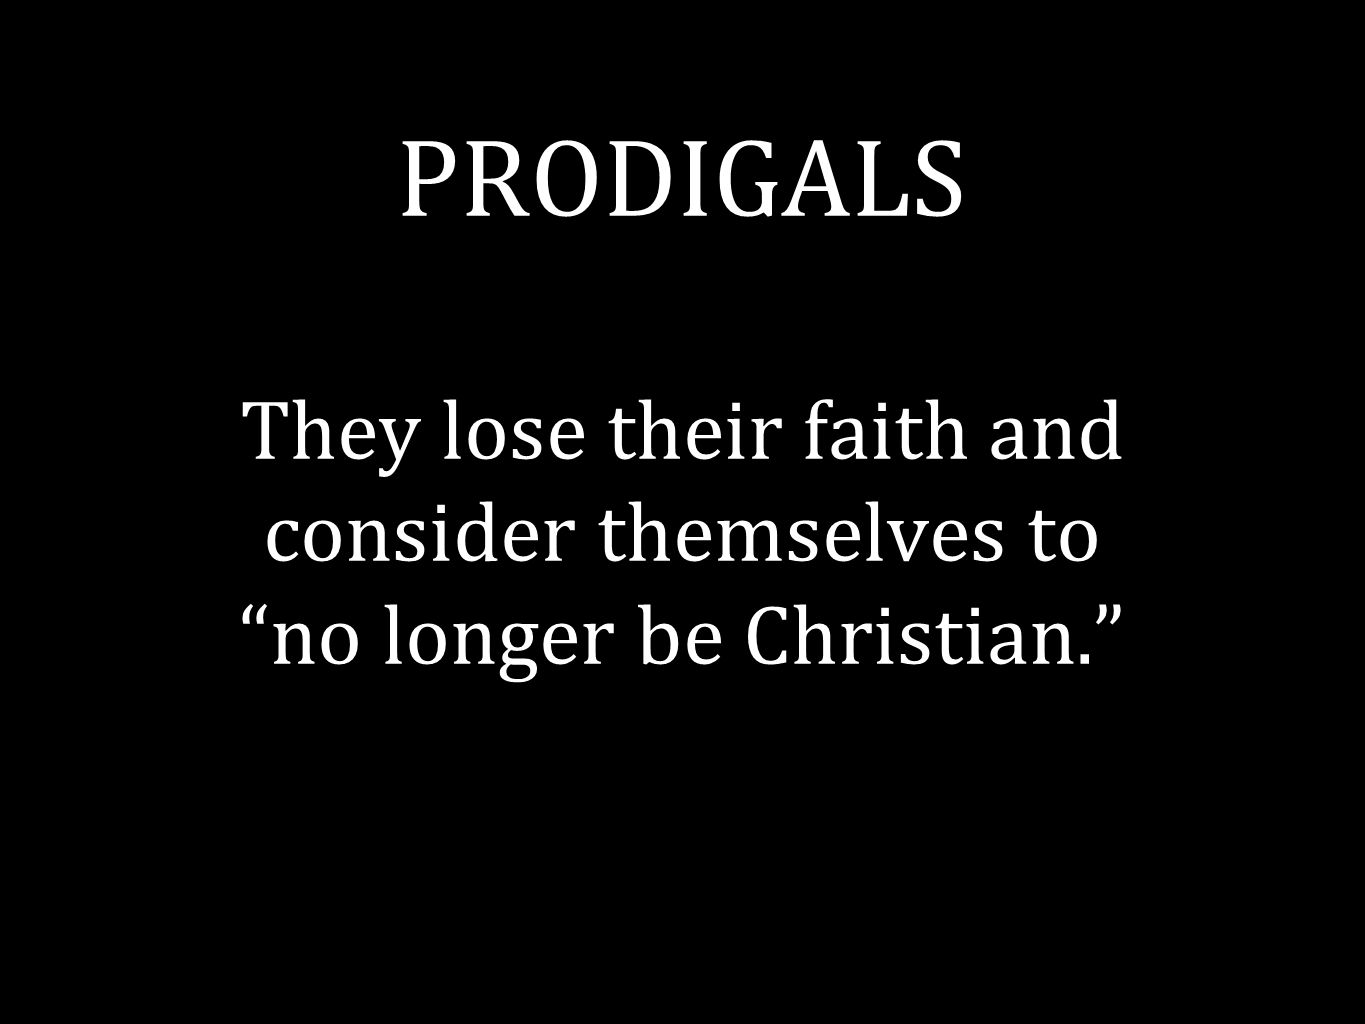 PRODIGALS They lose their faith and consider themselves to no longer be Christian.